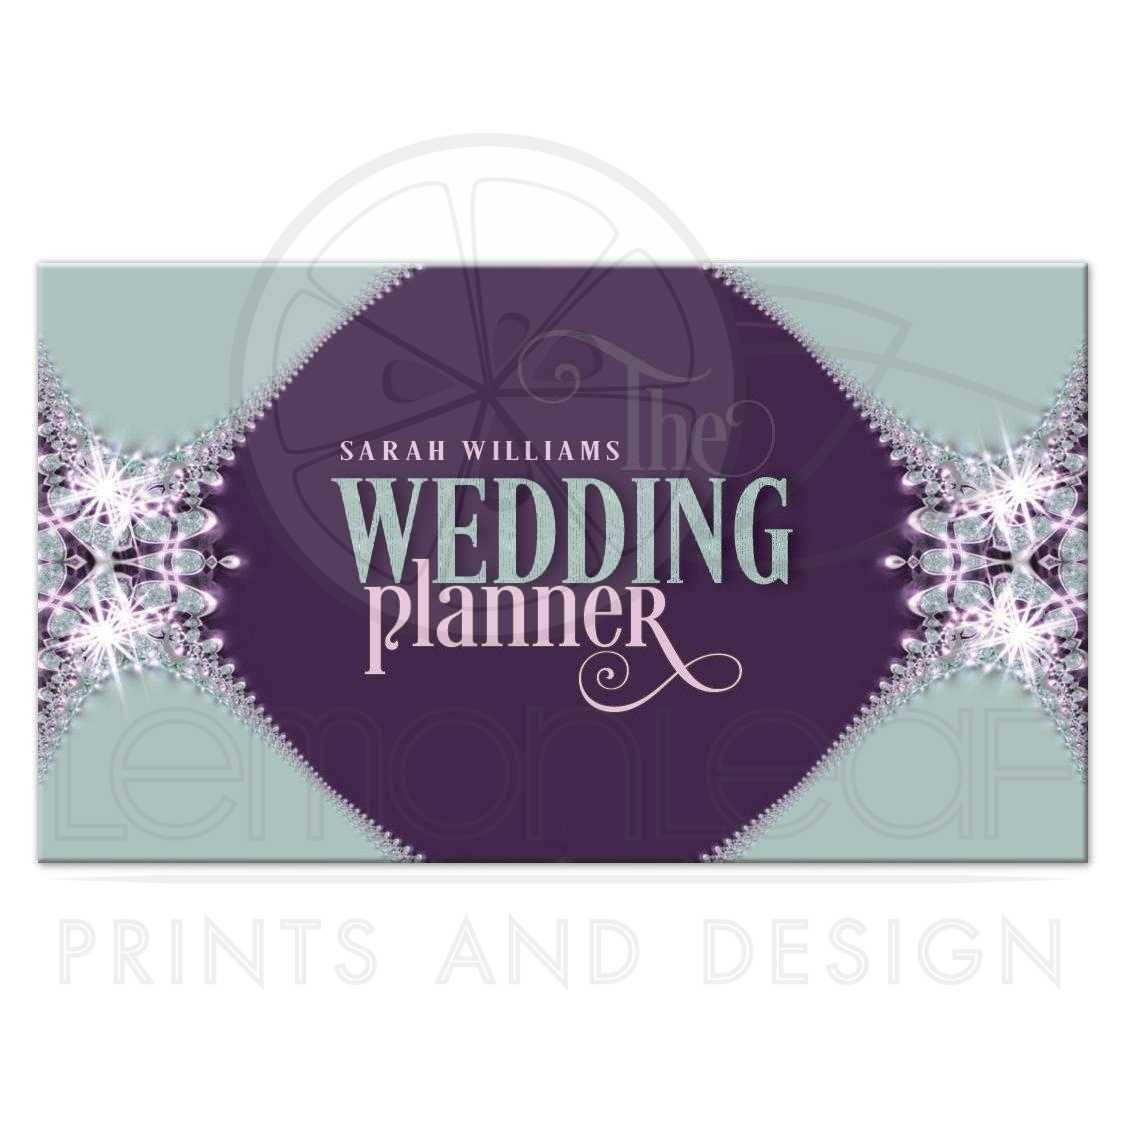 Sparkle lace wedding planner business card purple mint sparkle lace wedding planner business card colourmoves